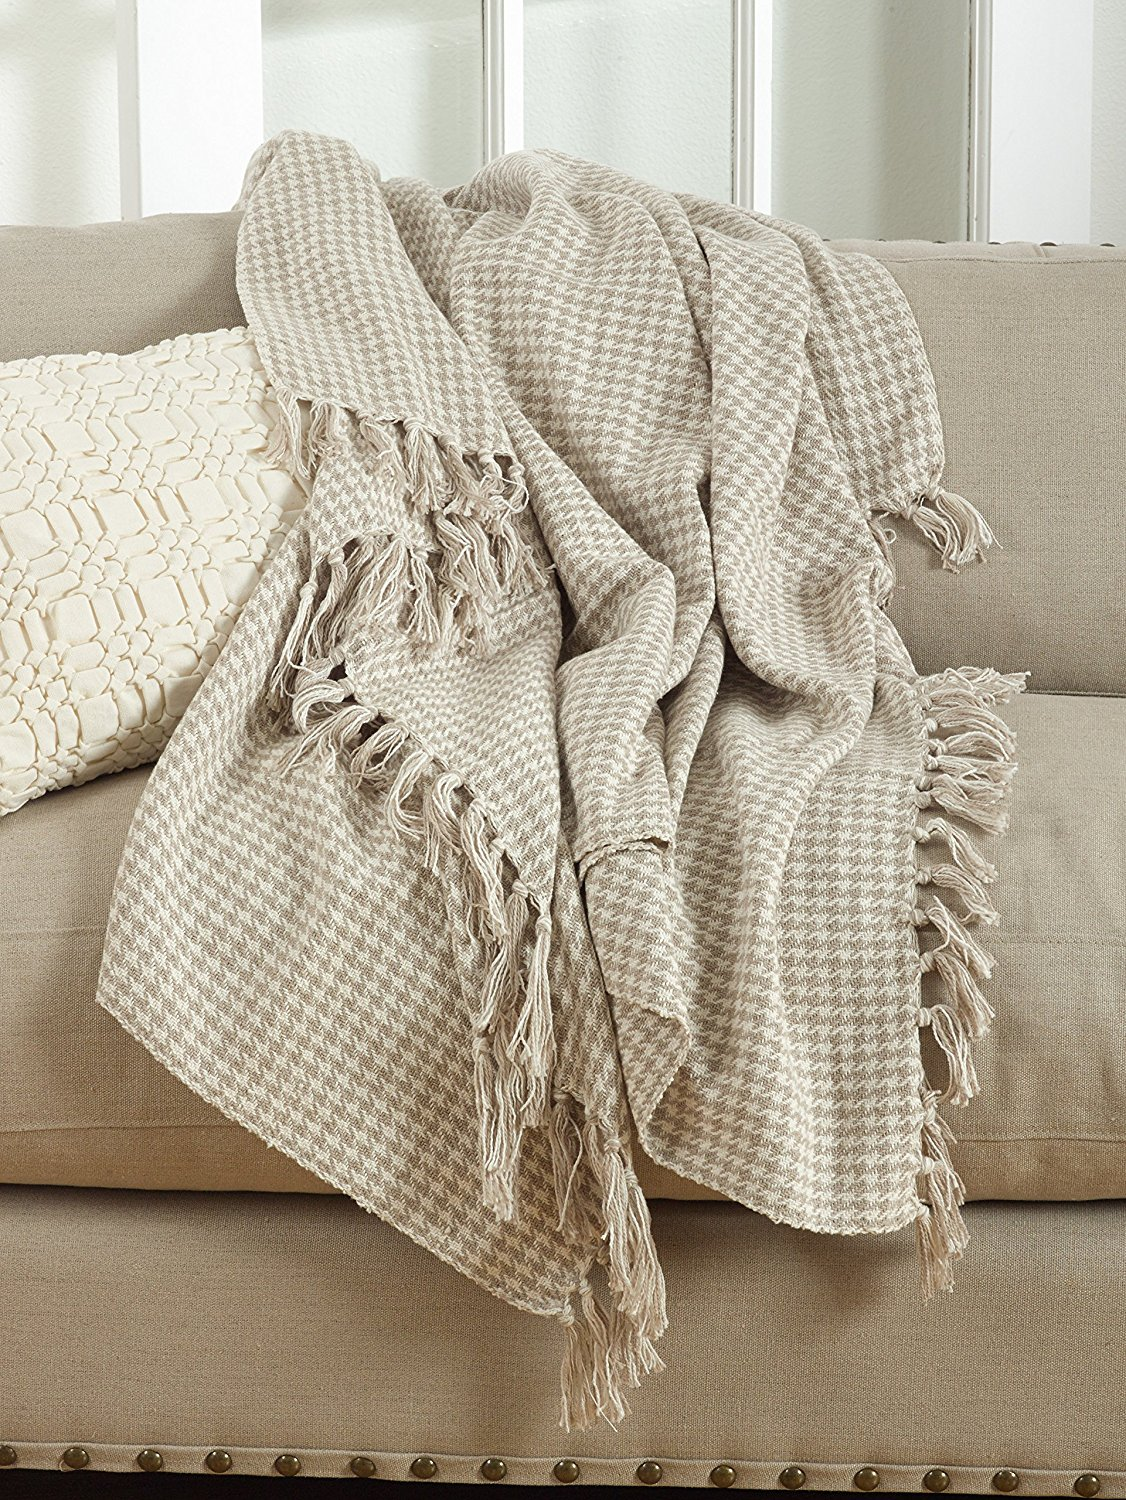 Cheap Houndstooth Throw, find Houndstooth Throw deals on line at ...